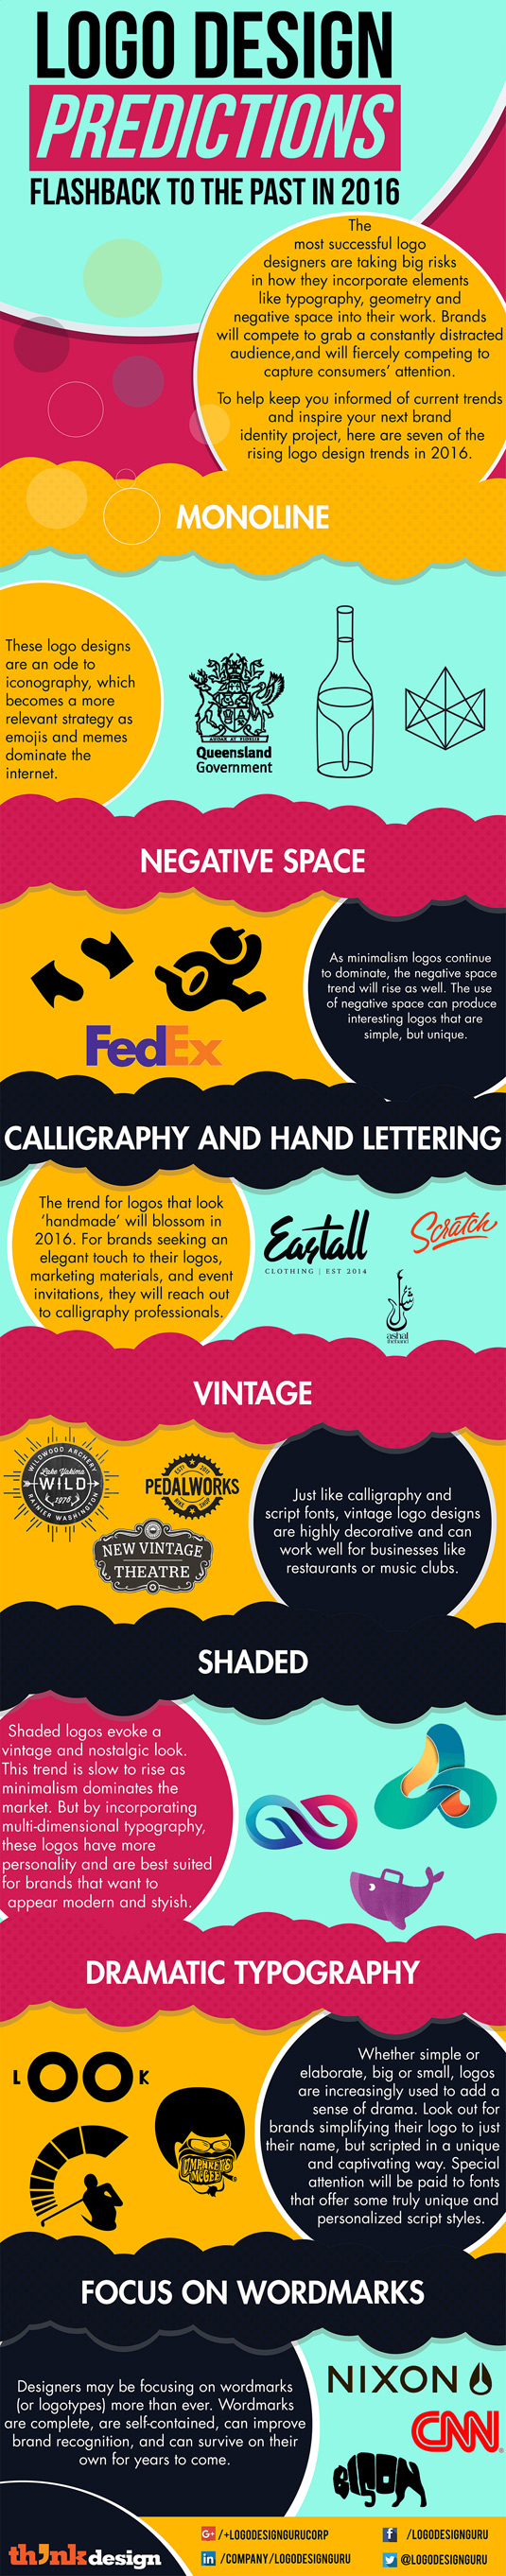 Logo Design Trends 2016